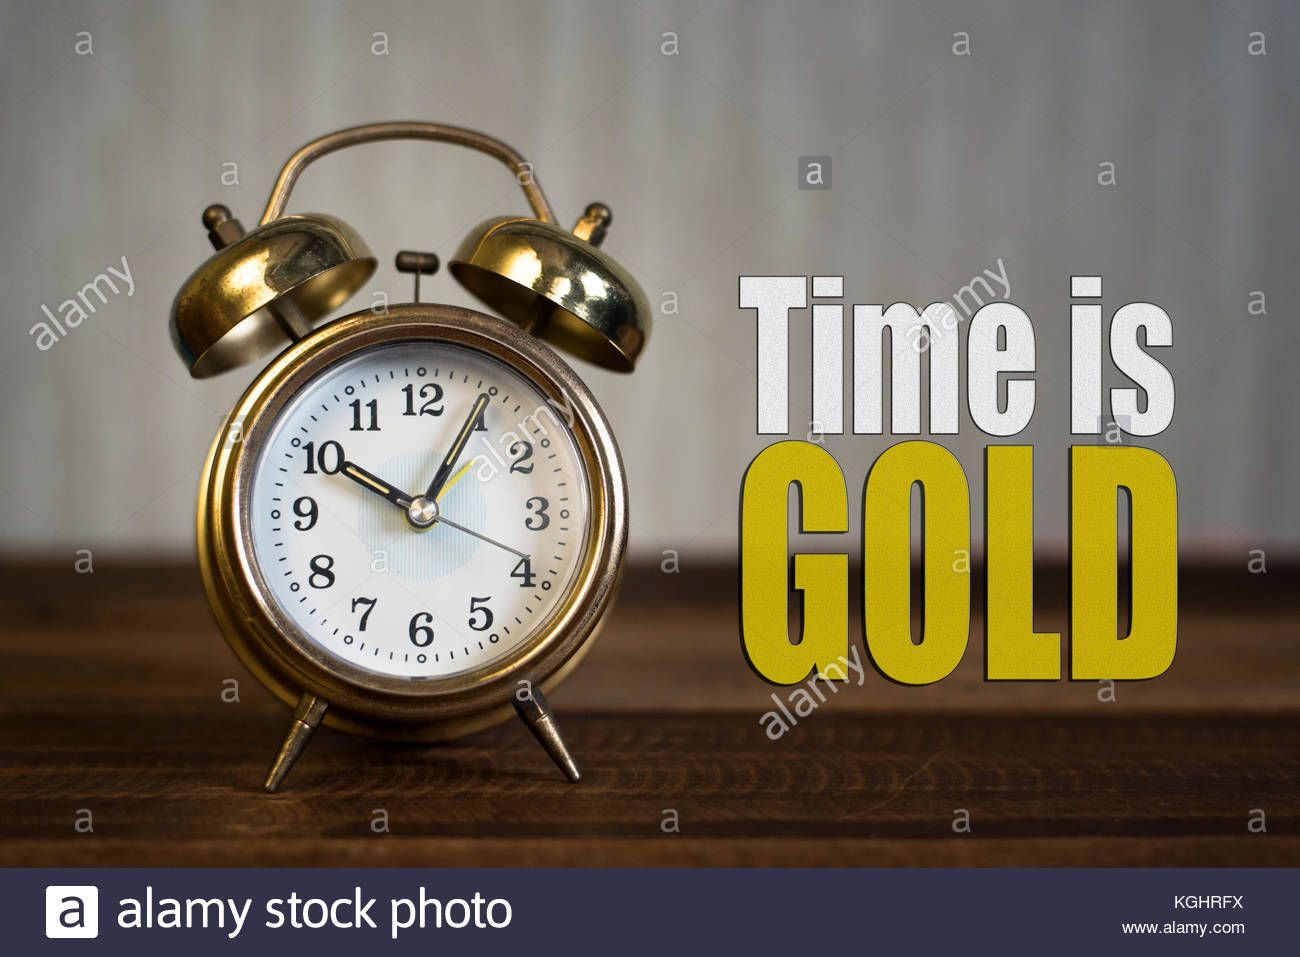 Download This Stock Image Time Is Gold Concept Gold Bell Clock On A Wooden Table With Time Is Gold Word Kghrfx From Alamy Stock Photos Wooden Tables Clock Hd wallpaper alarm clock dial time